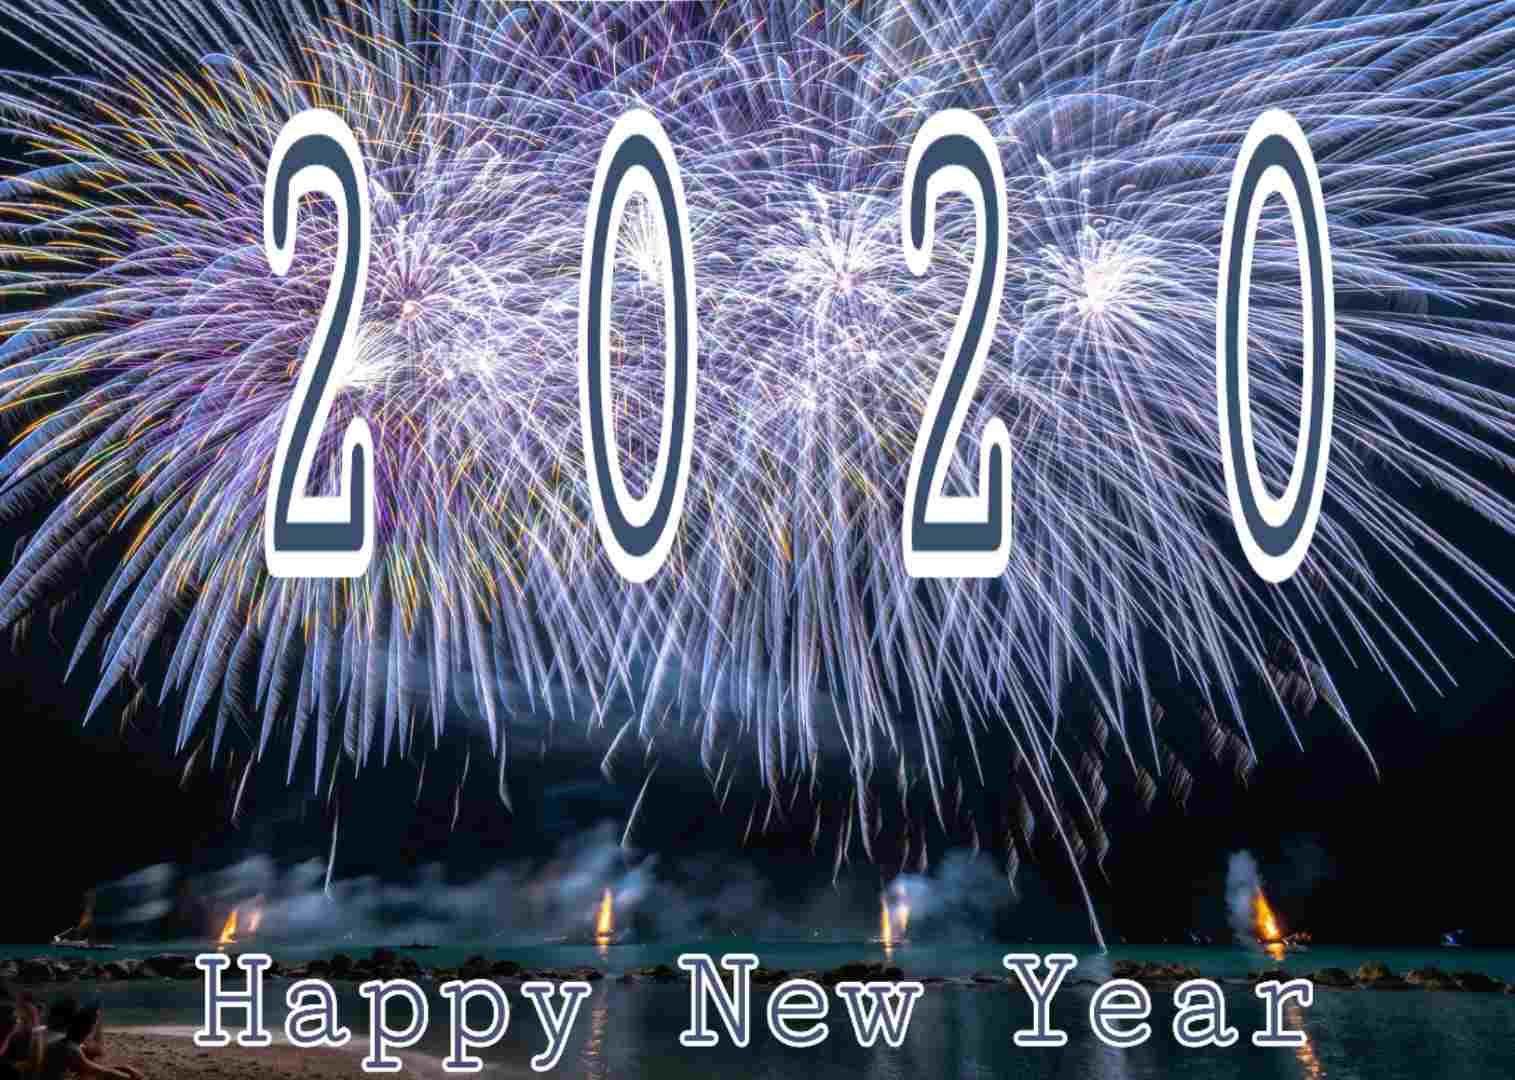 Download Happy New Year 2020 Image HD Wallpaper